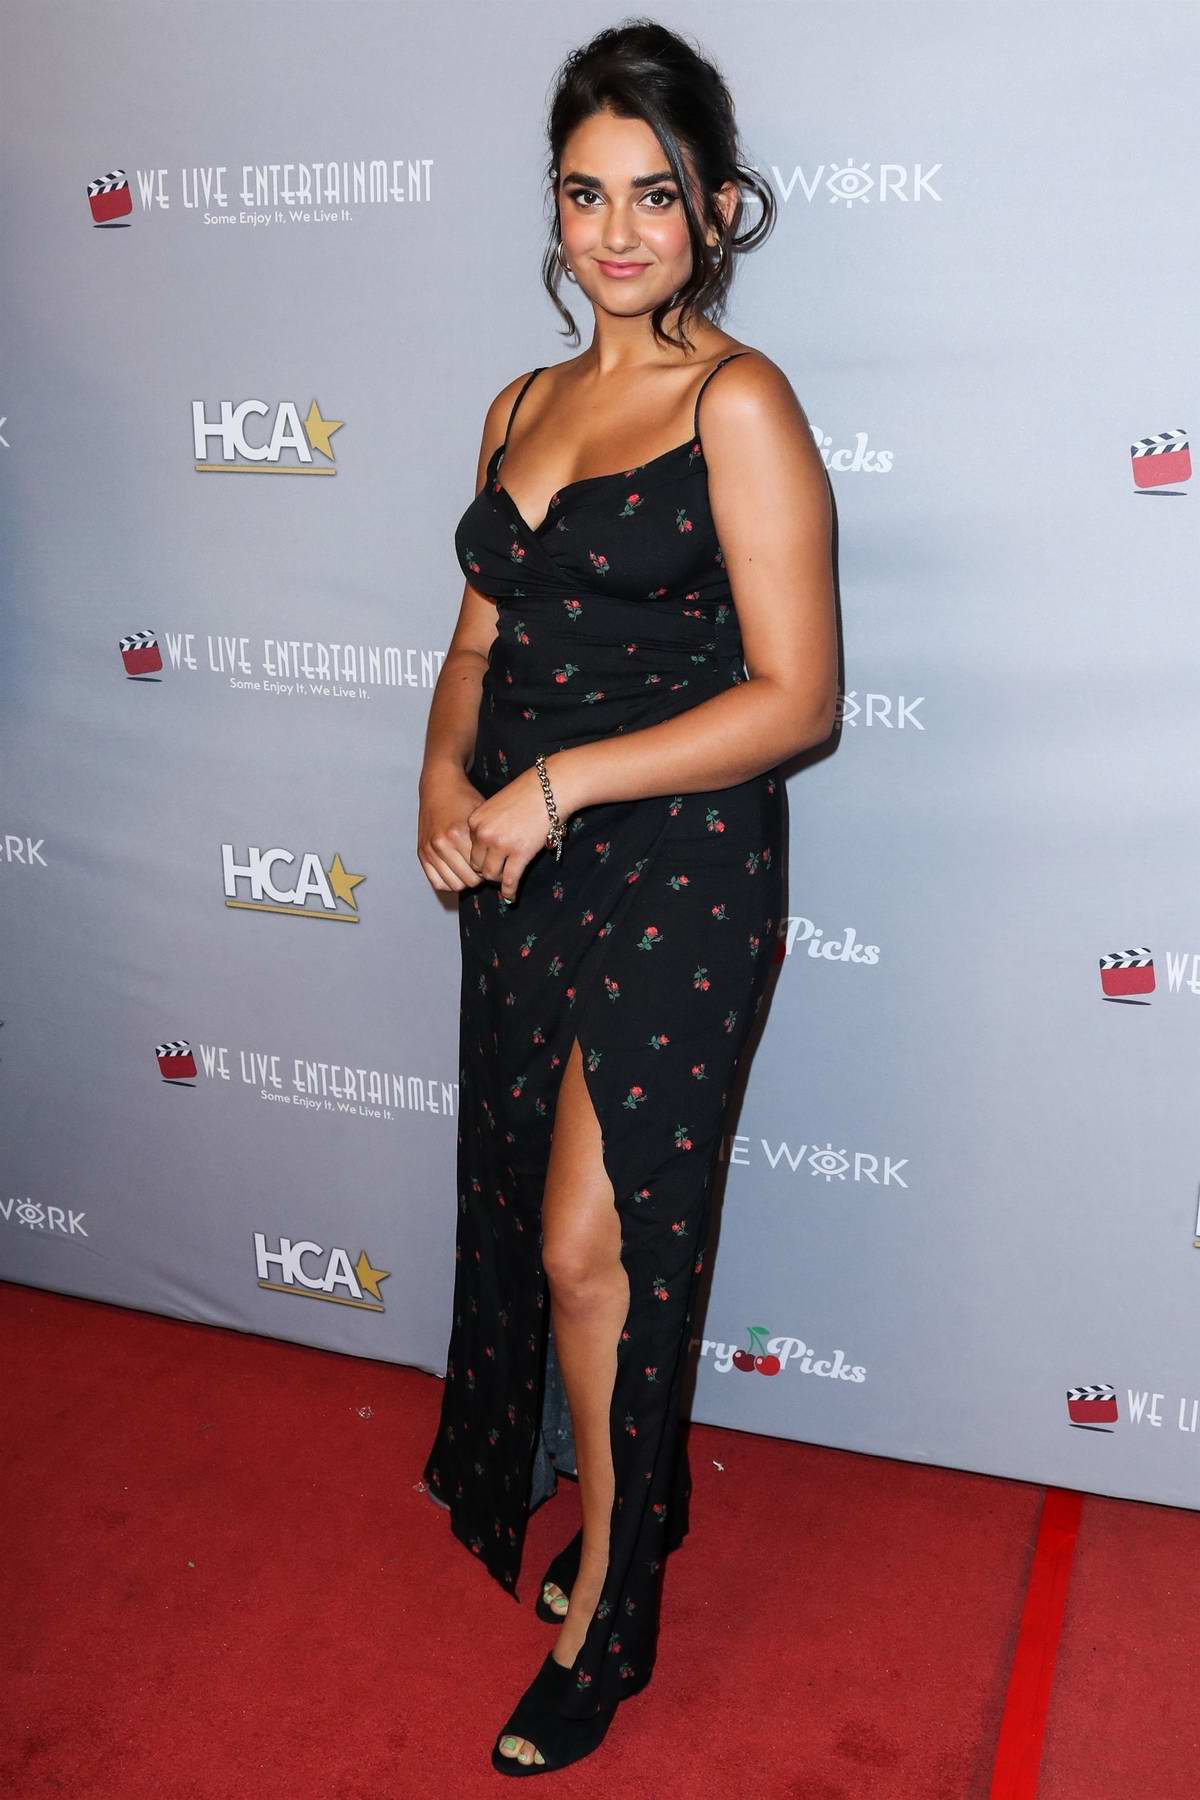 Geraldine Viswanathan attends the 3rd Annual Hollywood Critics' Awards at the Taglyan Cultural Complex in Hollywood, California